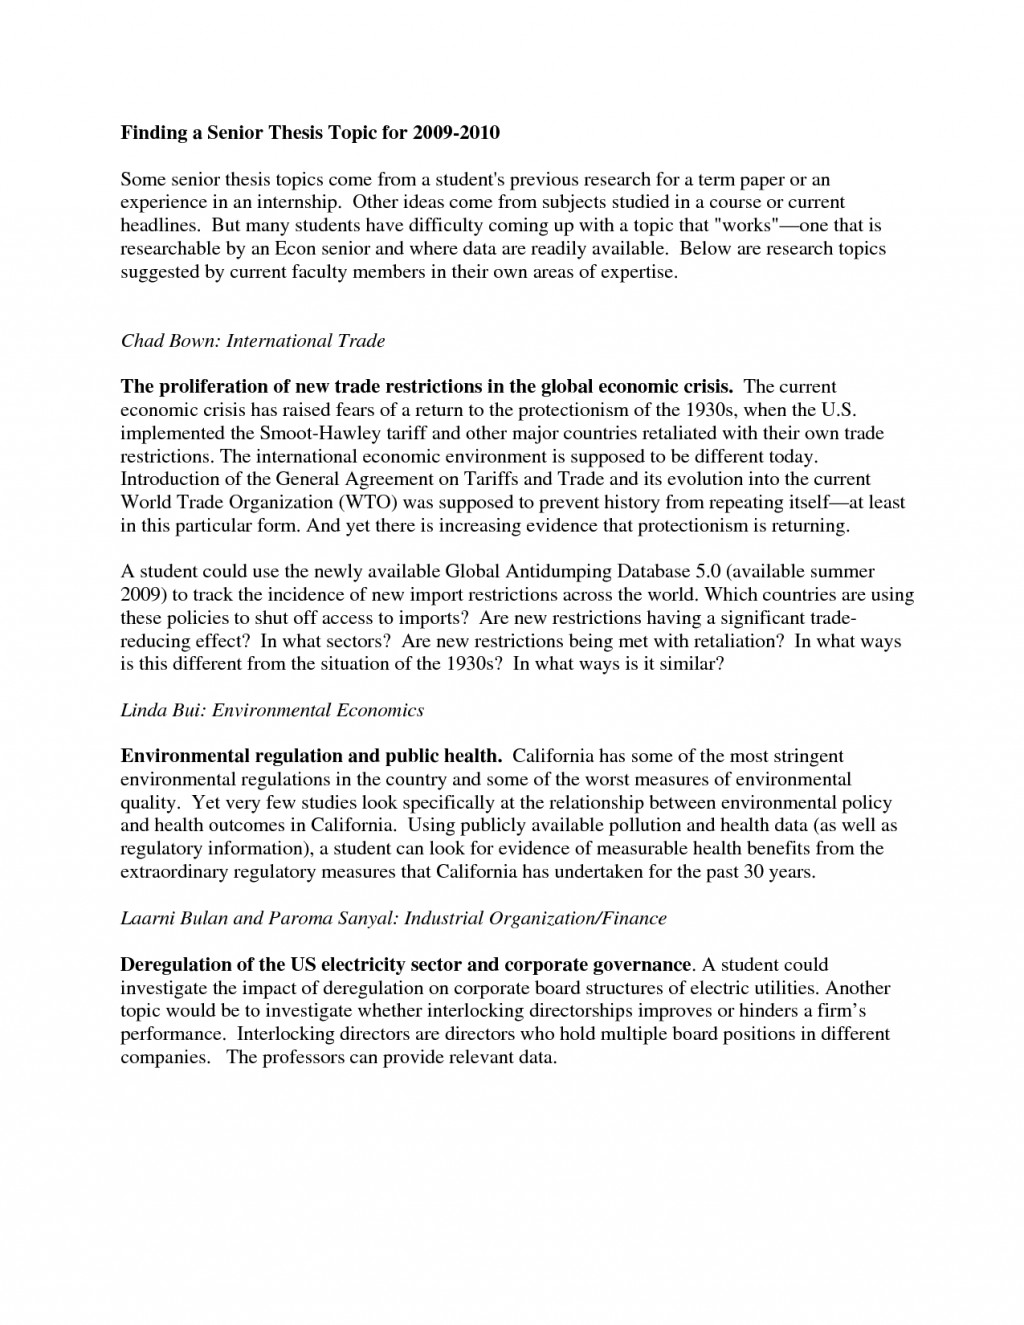 015 Great Research Paper Topics Striking For English Linguistics Good Psychology Argumentative College Large